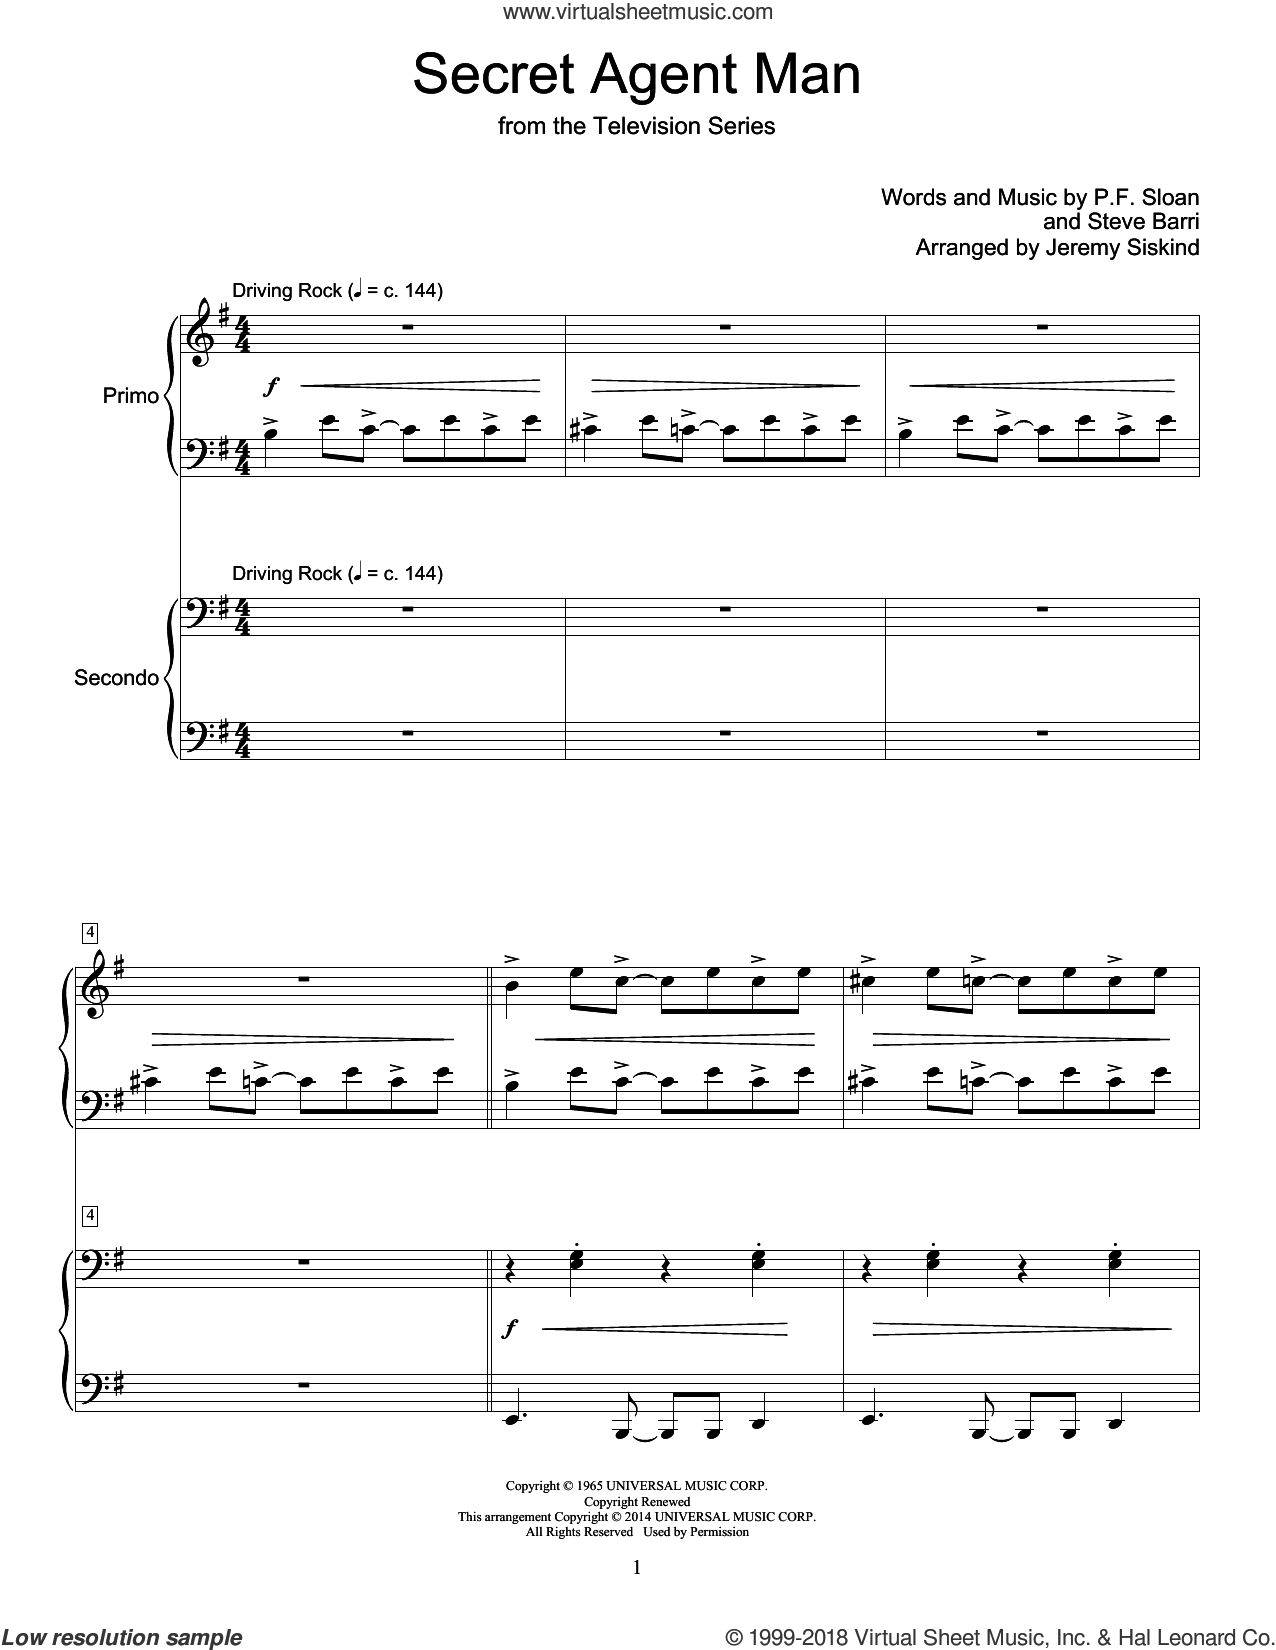 Secret Agent Man sheet music for piano four hands by Jeremy Siskind, Johnny Rivers and Steve Barri, intermediate. Score Image Preview.